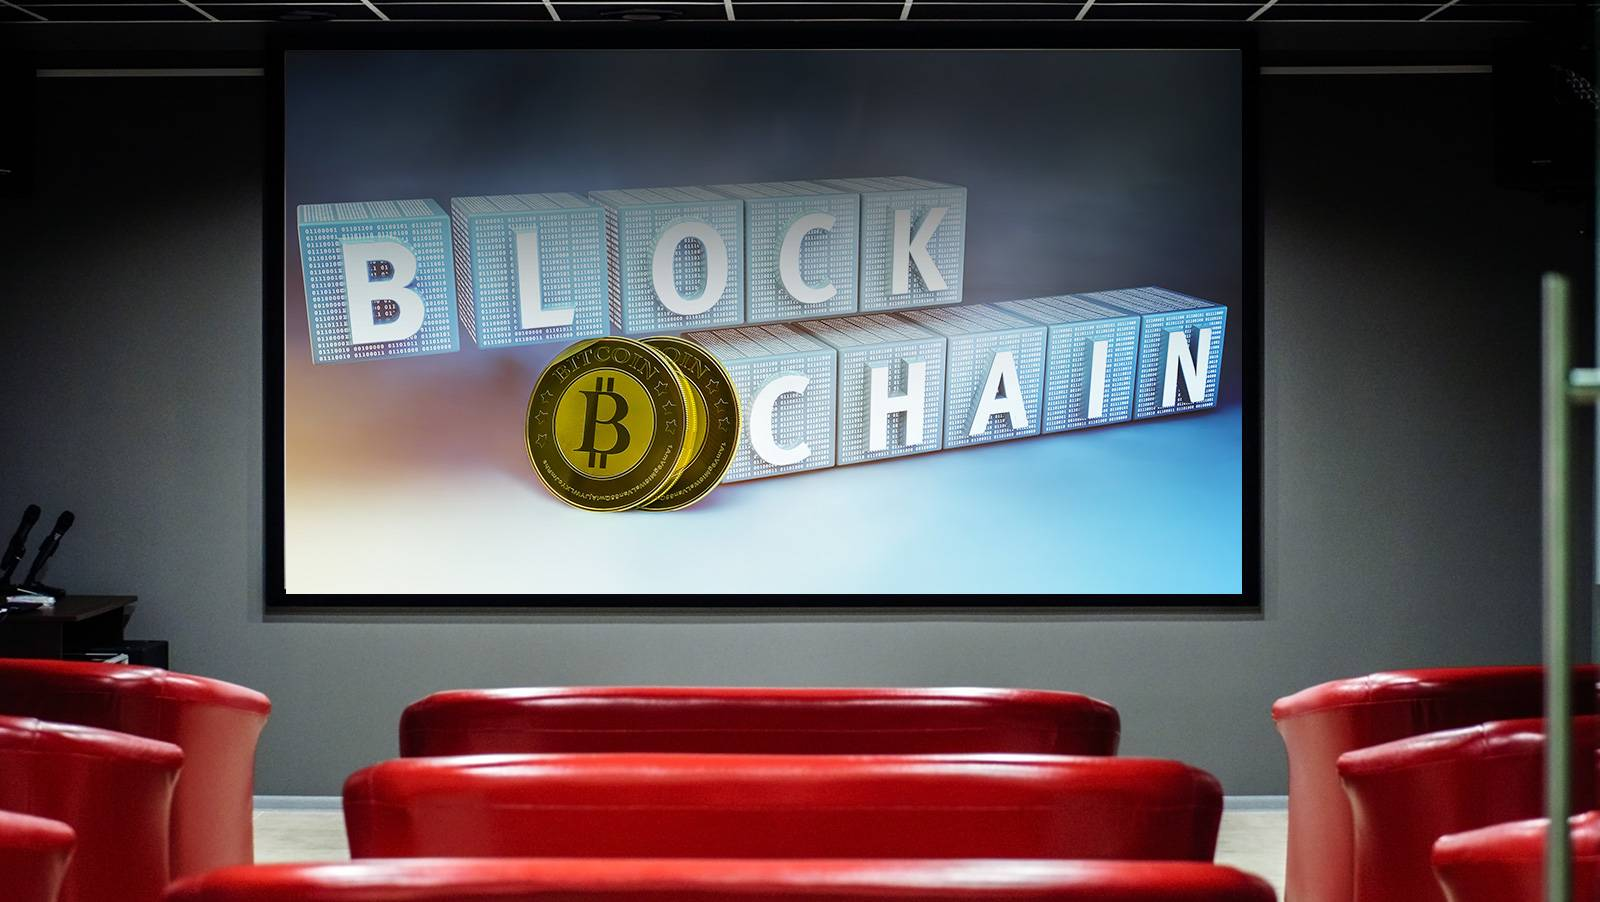 Becky's Affiliated: How to keep on top of Bitcoin & Blockchain technology